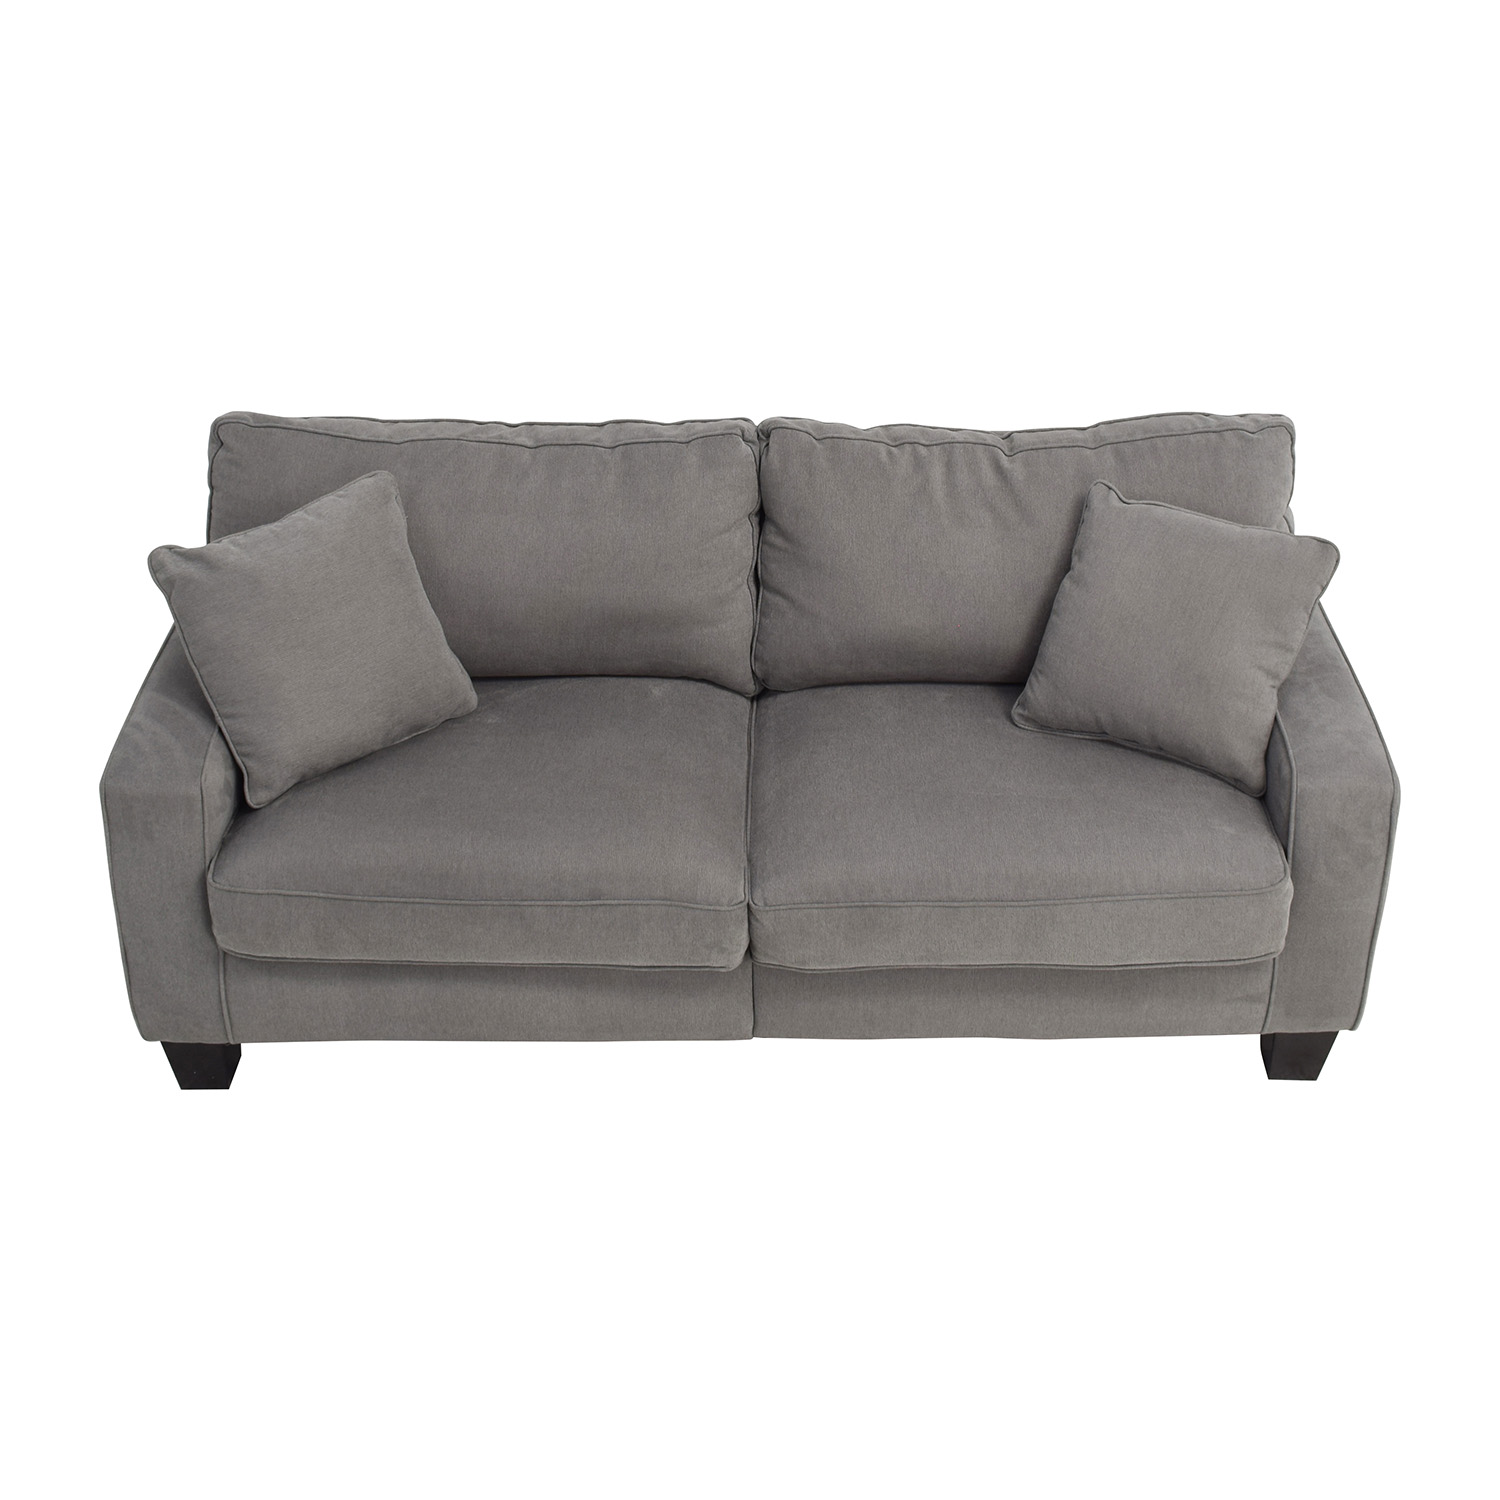 shop Serta Grey Couch with Toss Pillows Serta Classic Sofas